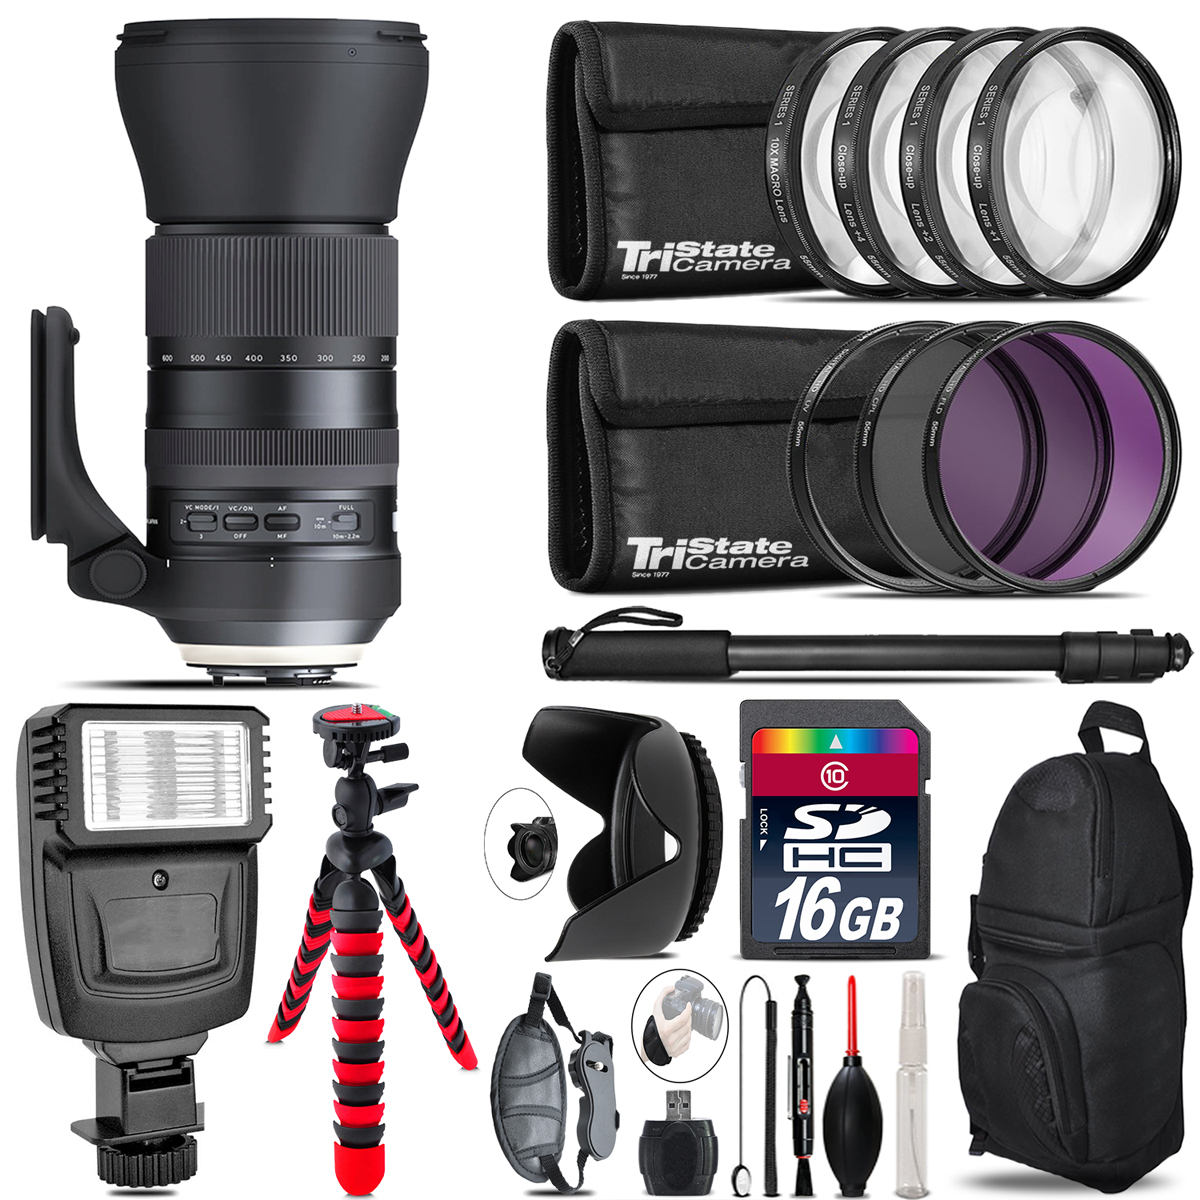 Tamron 150-600mm G2 for Canon + Flash + Tripod & More - 16GB Accessory Kit *FREE SHIPPING*